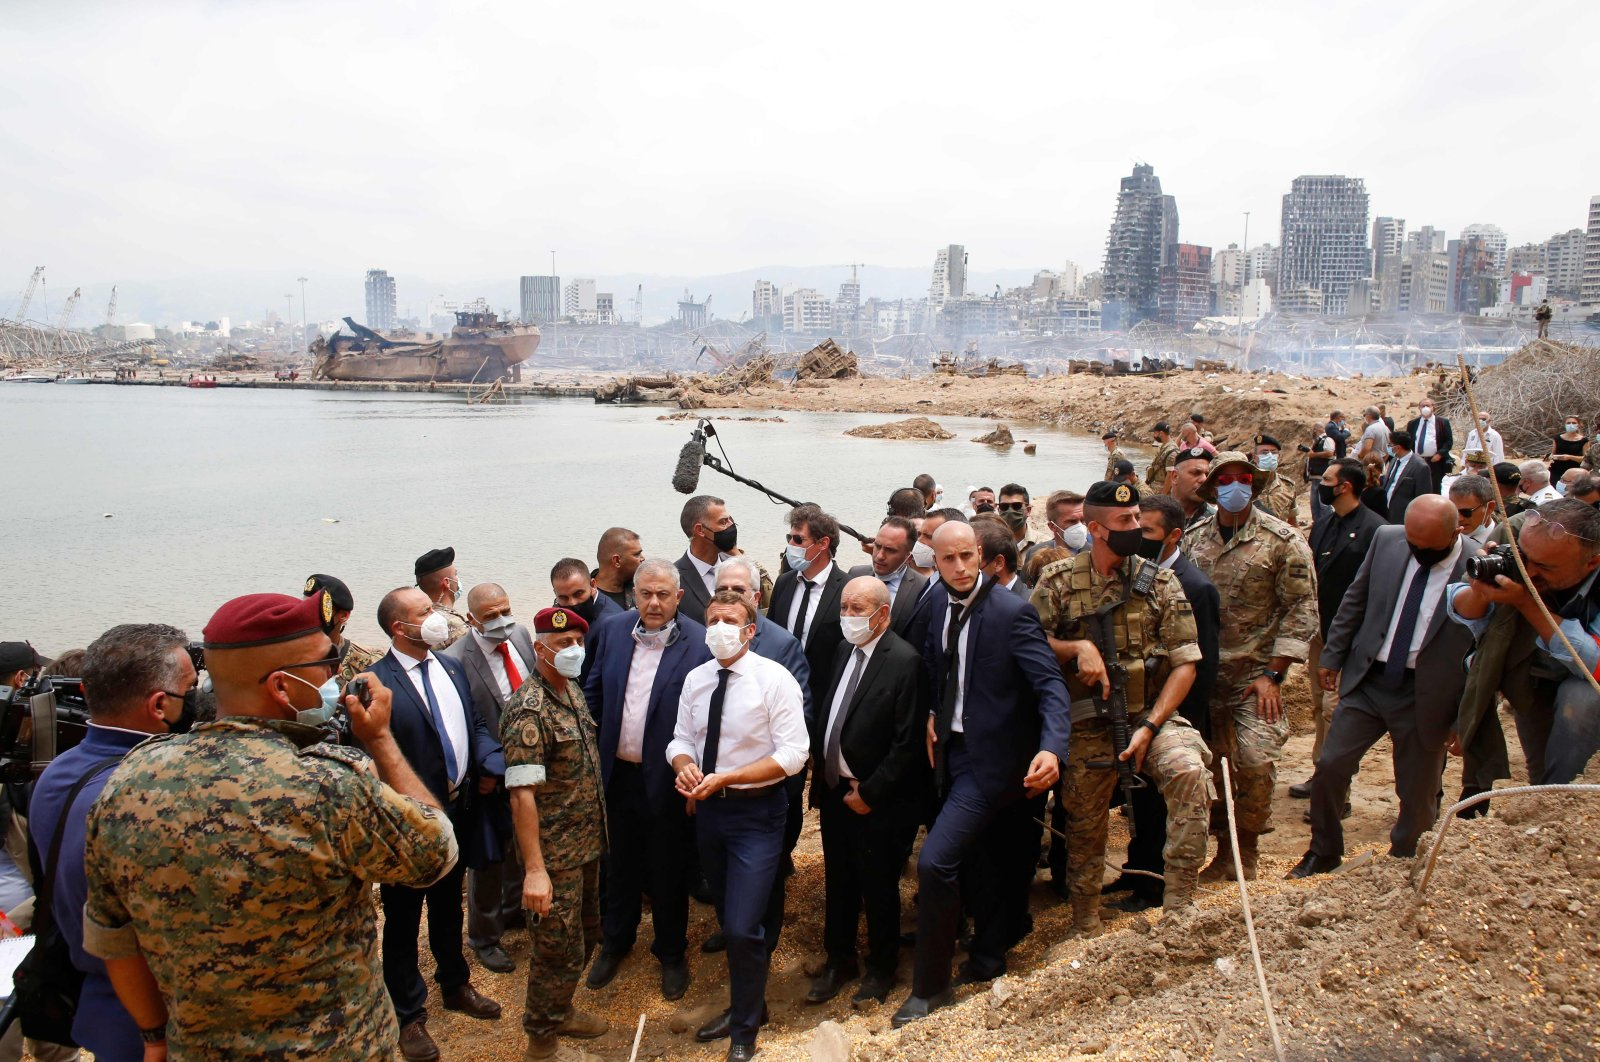 French President Emmanuel Macron (C) visits the devastated site of the explosion at the port of Beirut, Aug. 6, 2020. (AFP Photo)